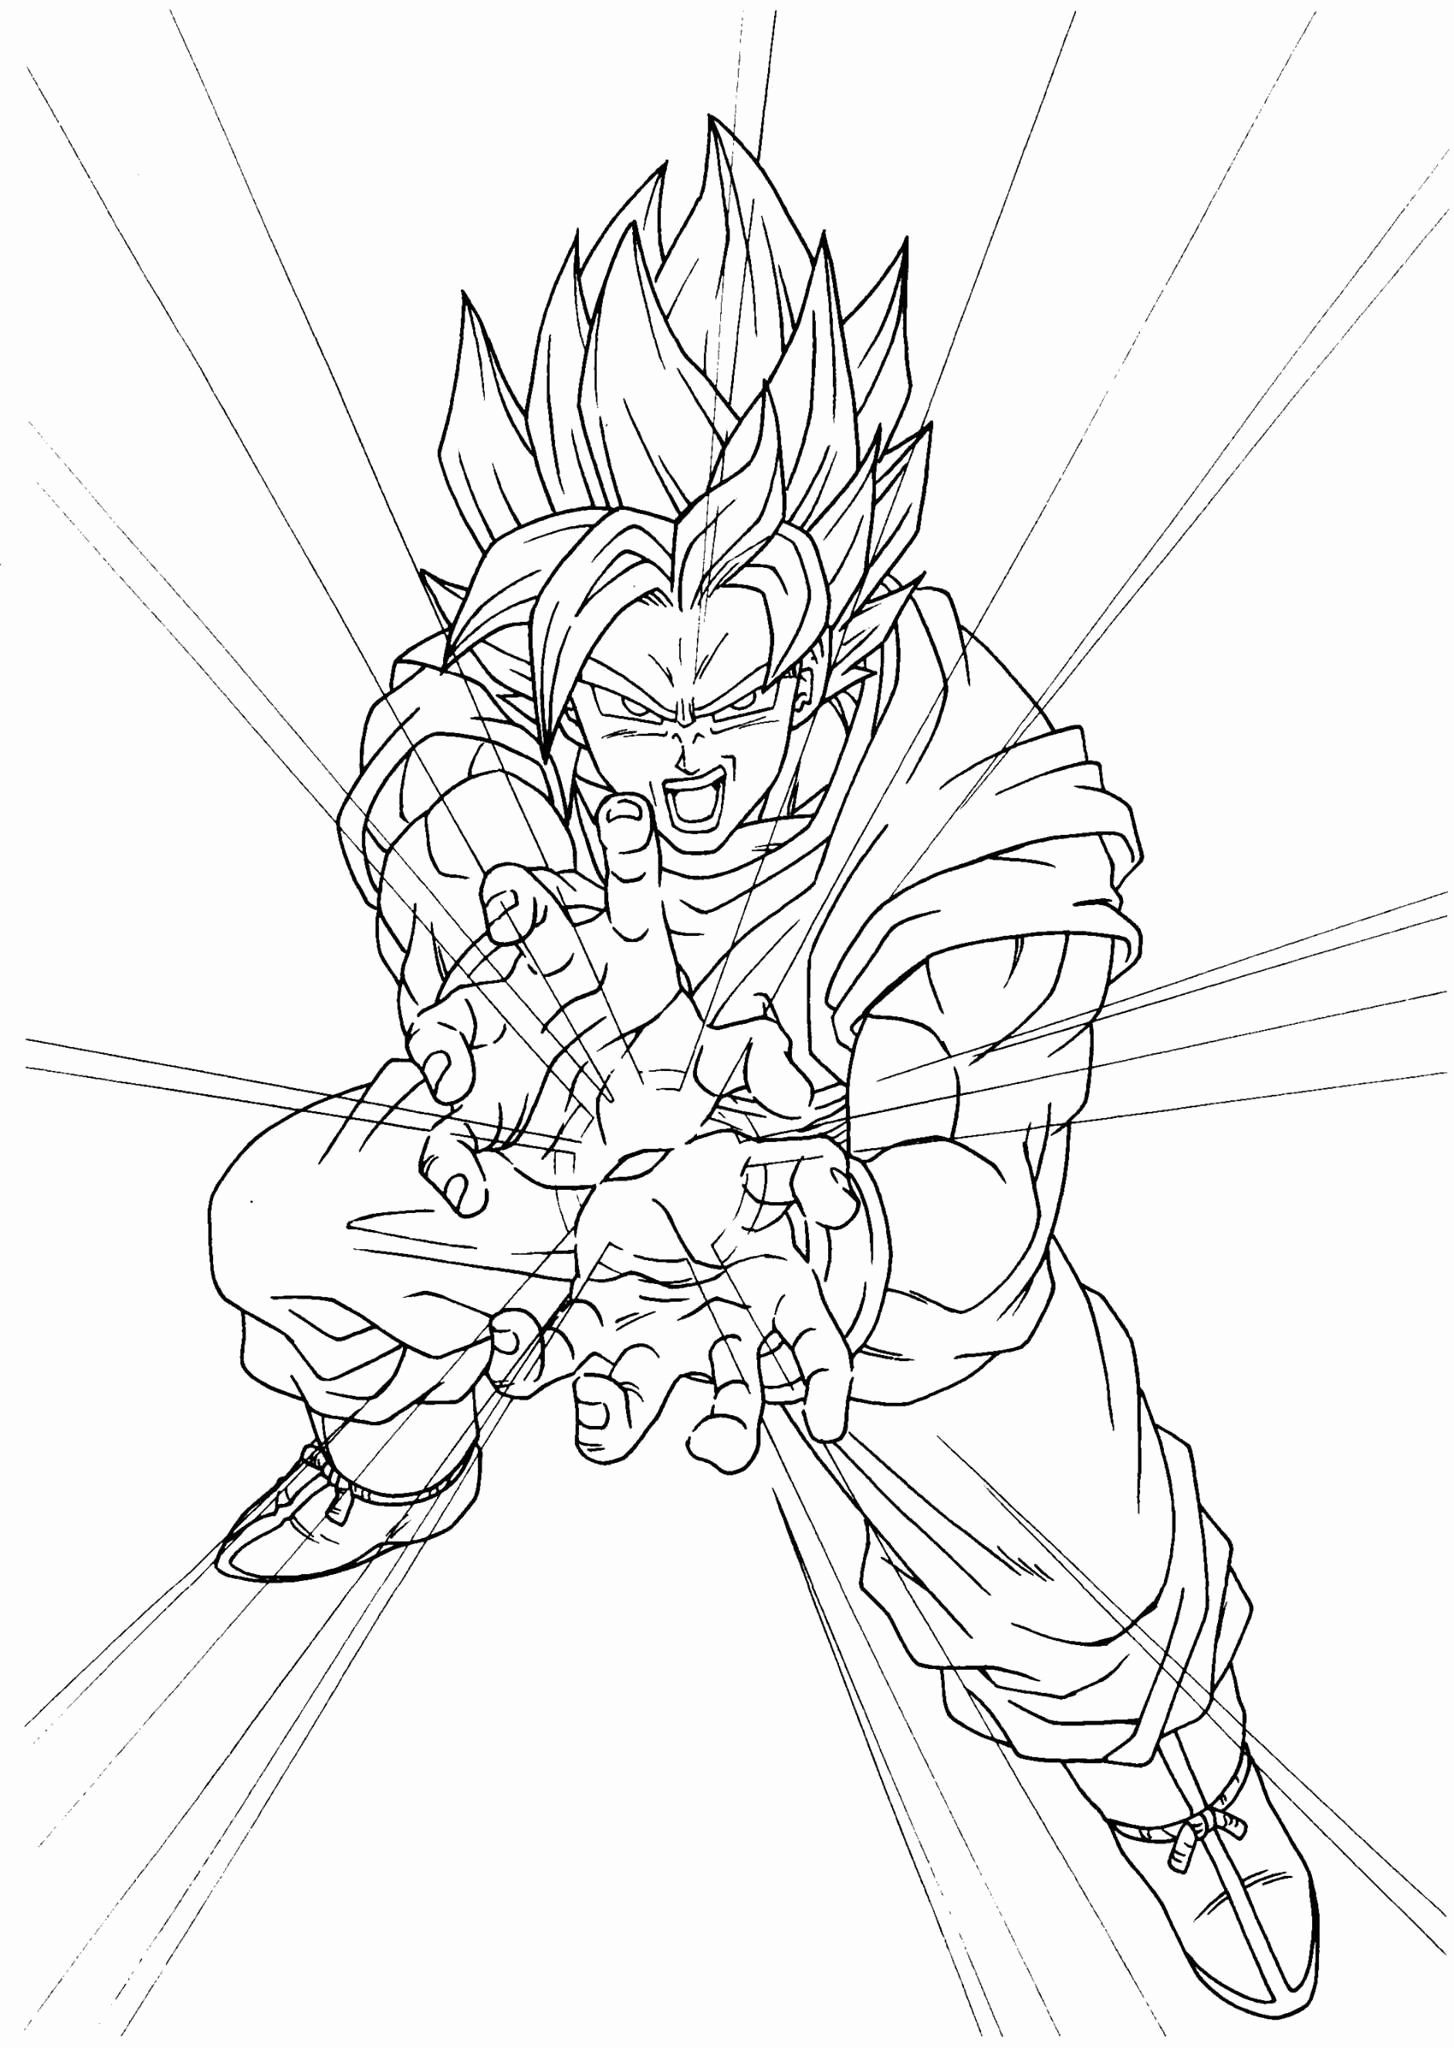 Dragon Ball Gt Coloring Pages Ideas Inspirational Pin By Jason Ryan On Dragonball Z Gt Kai He Dragon Coloring Page Animal Coloring Pages Cartoon Coloring Pages